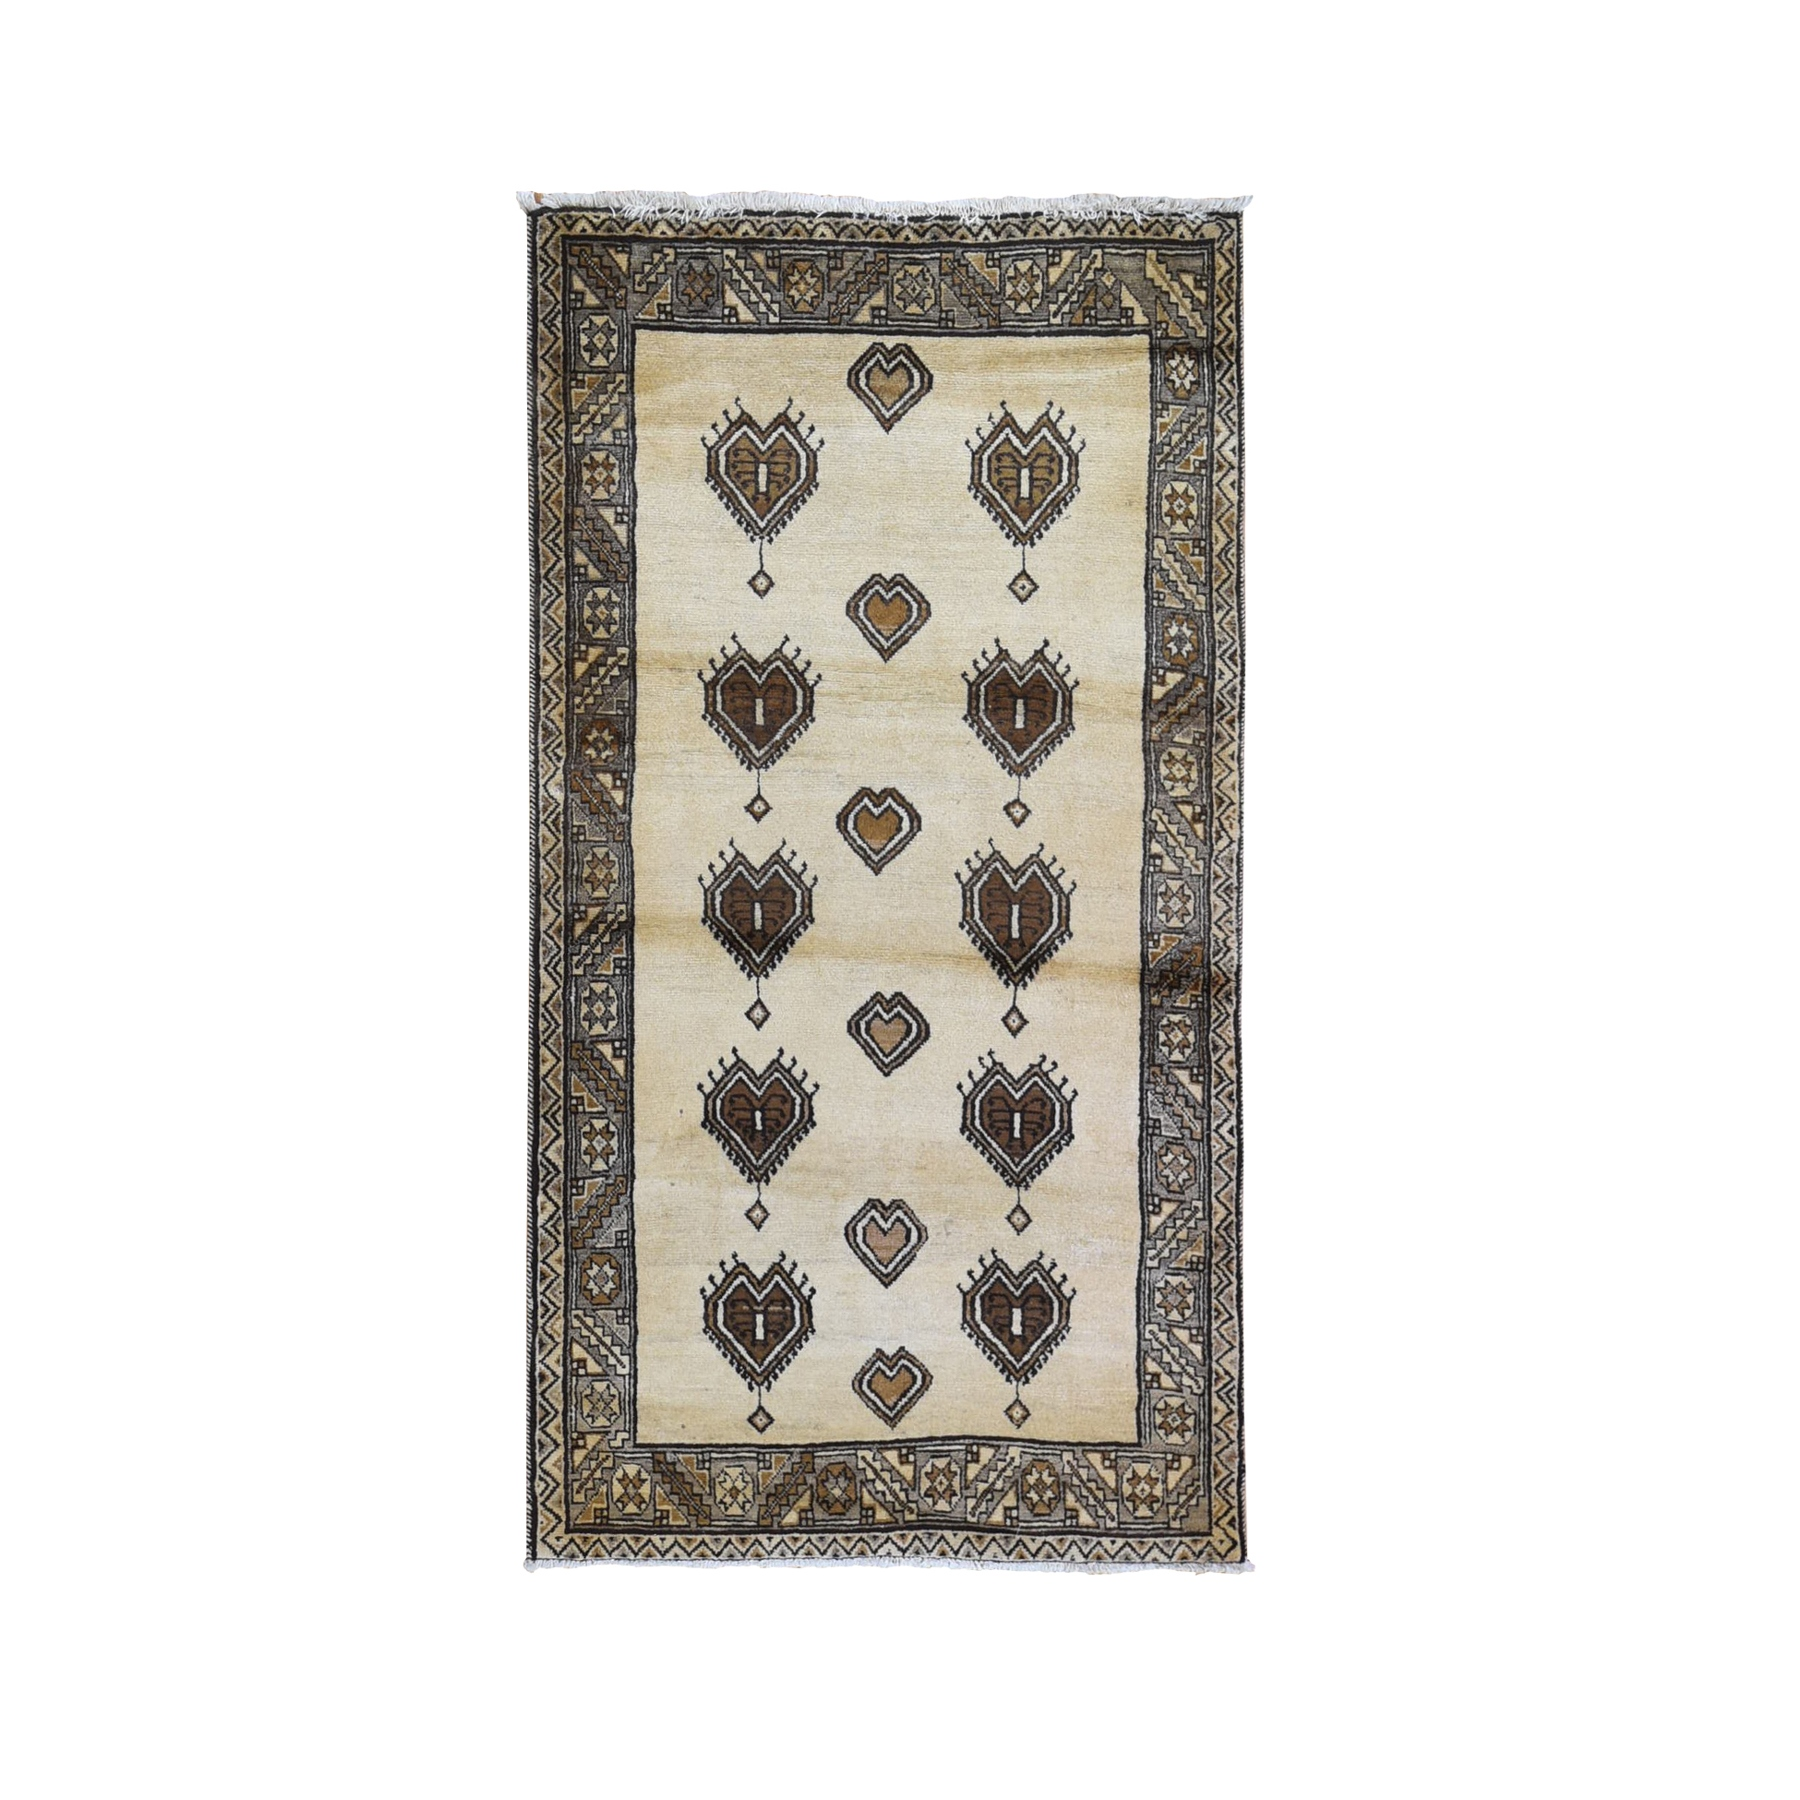 "3'8""x7' Vintage Persian Gabbeh, Abrash Natural Wool Color Shades with Heart Figurines Hand Knotted Oriental Rug"